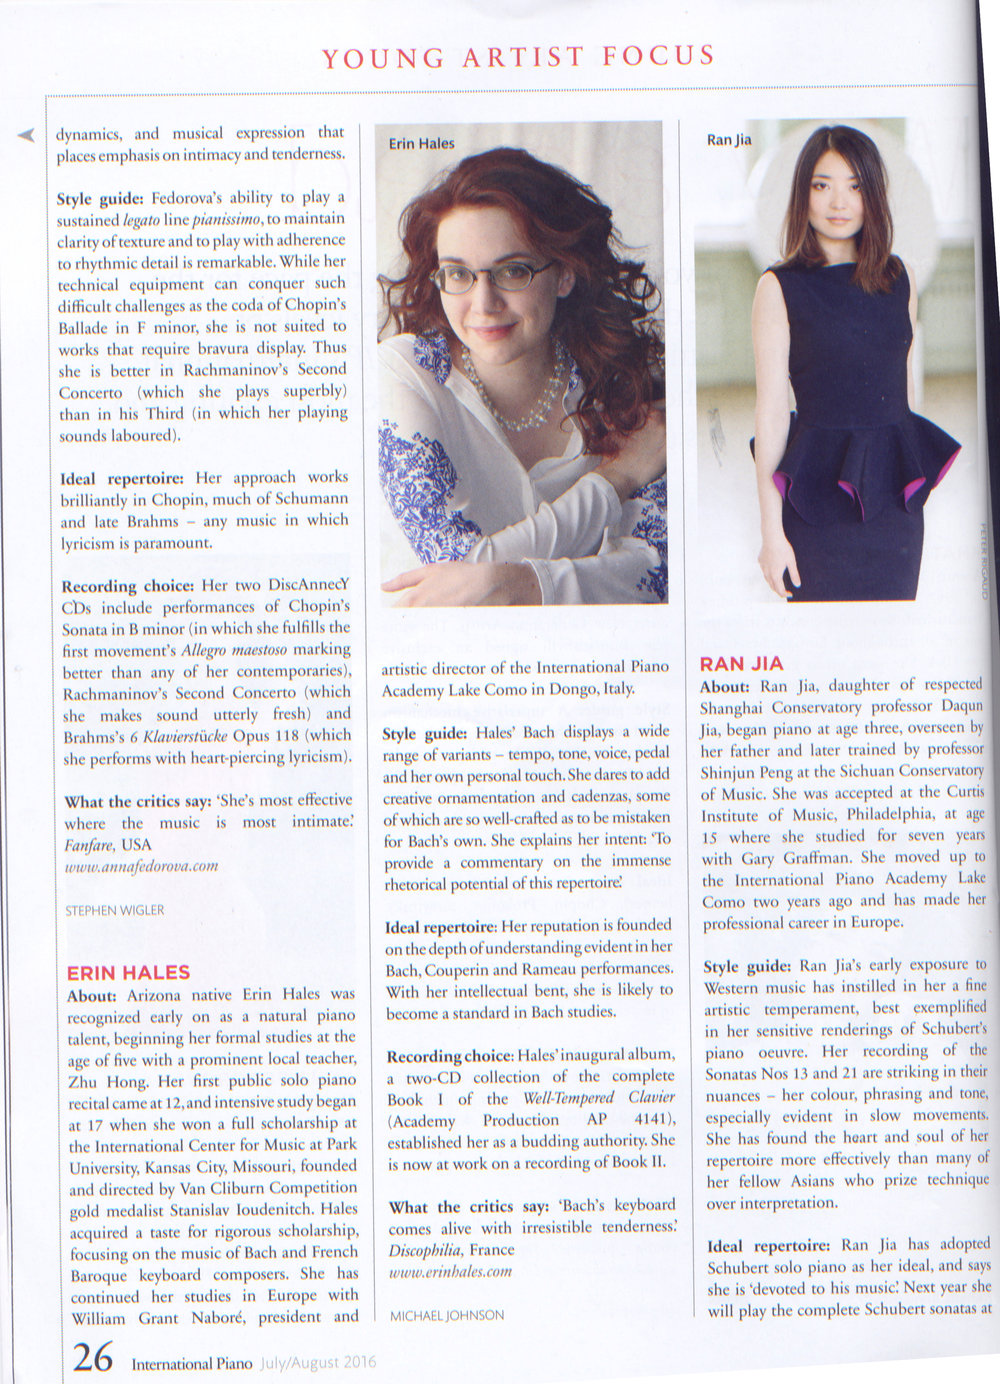 Erin Hales featured in the July/August 2016 issue of   International Piano .